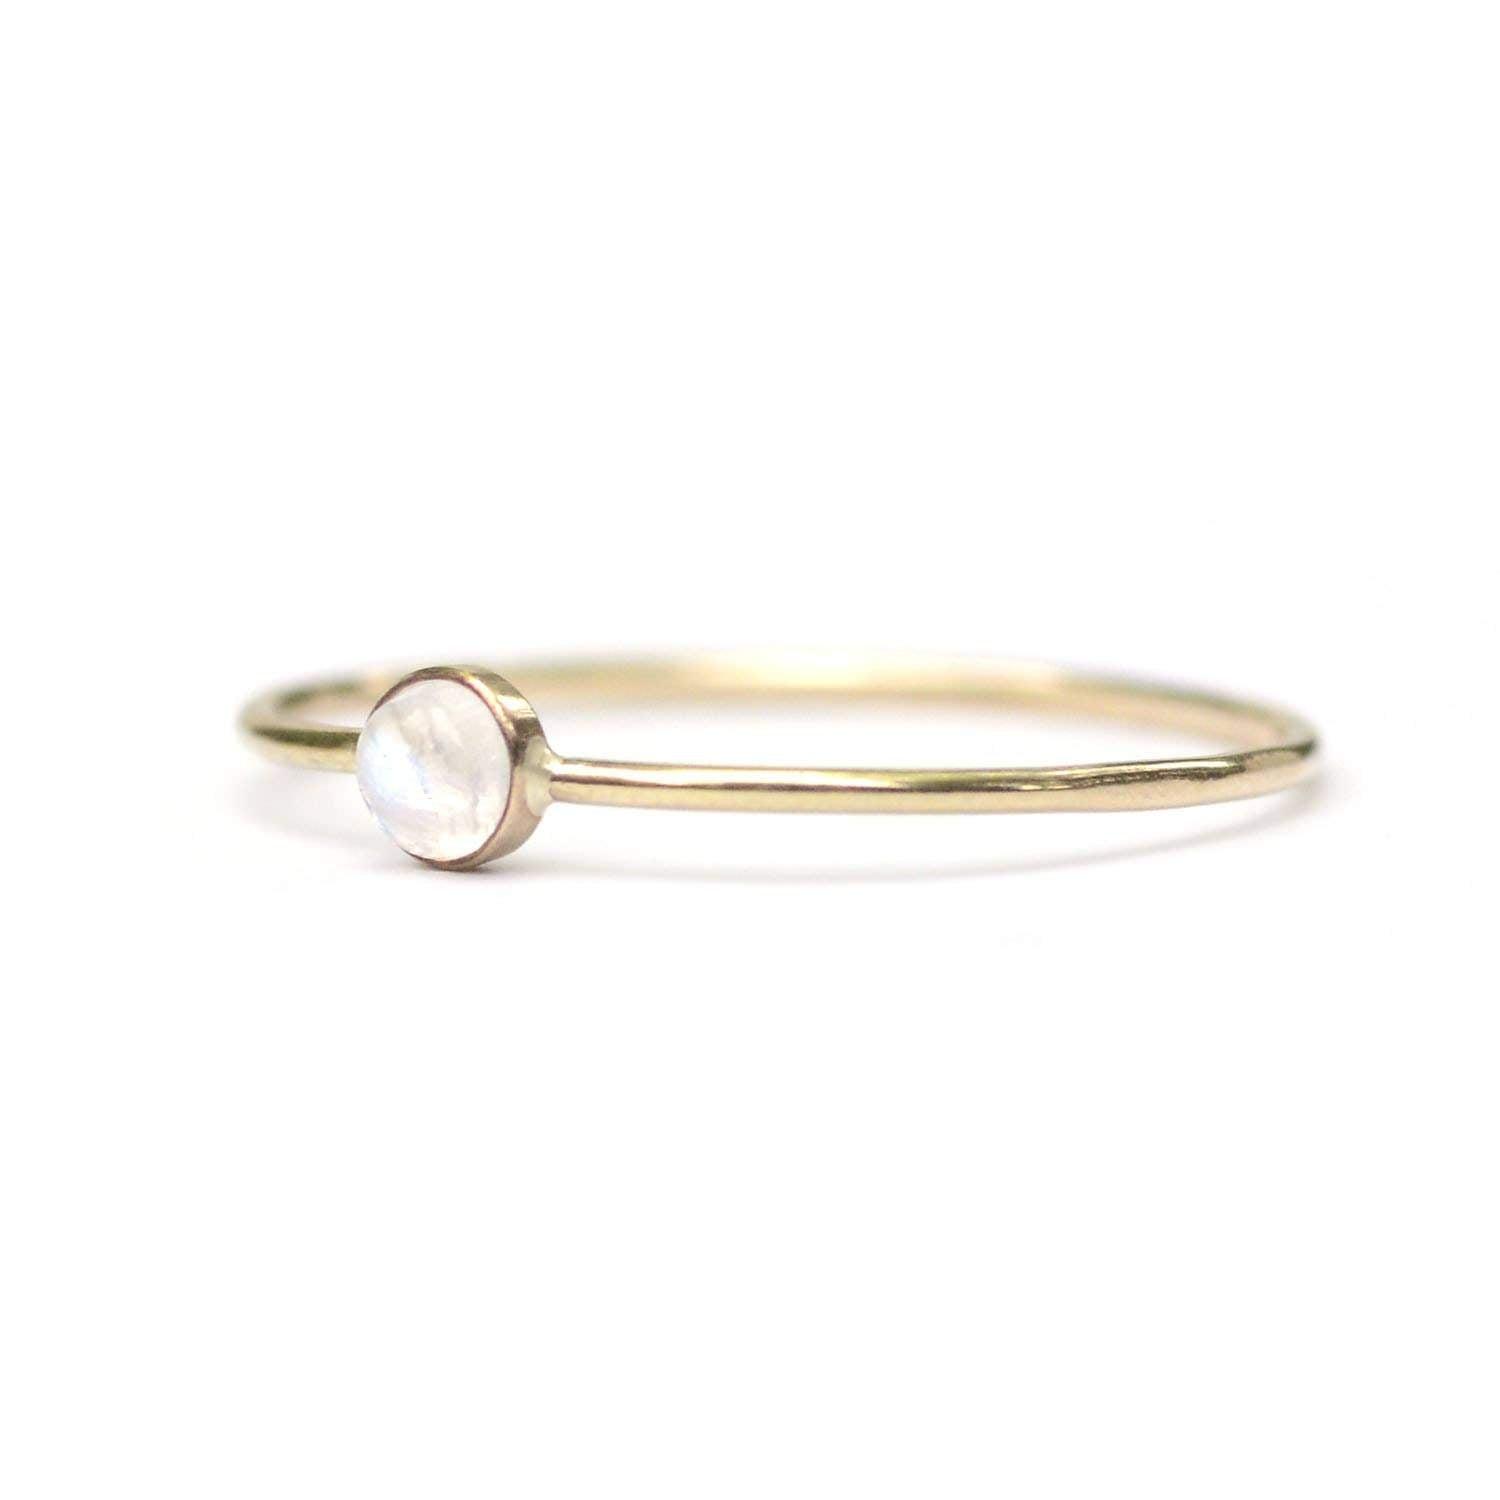 Moonstone Dot Ring - 14k Gold Fill - Favor Jewelry -Freehand Market